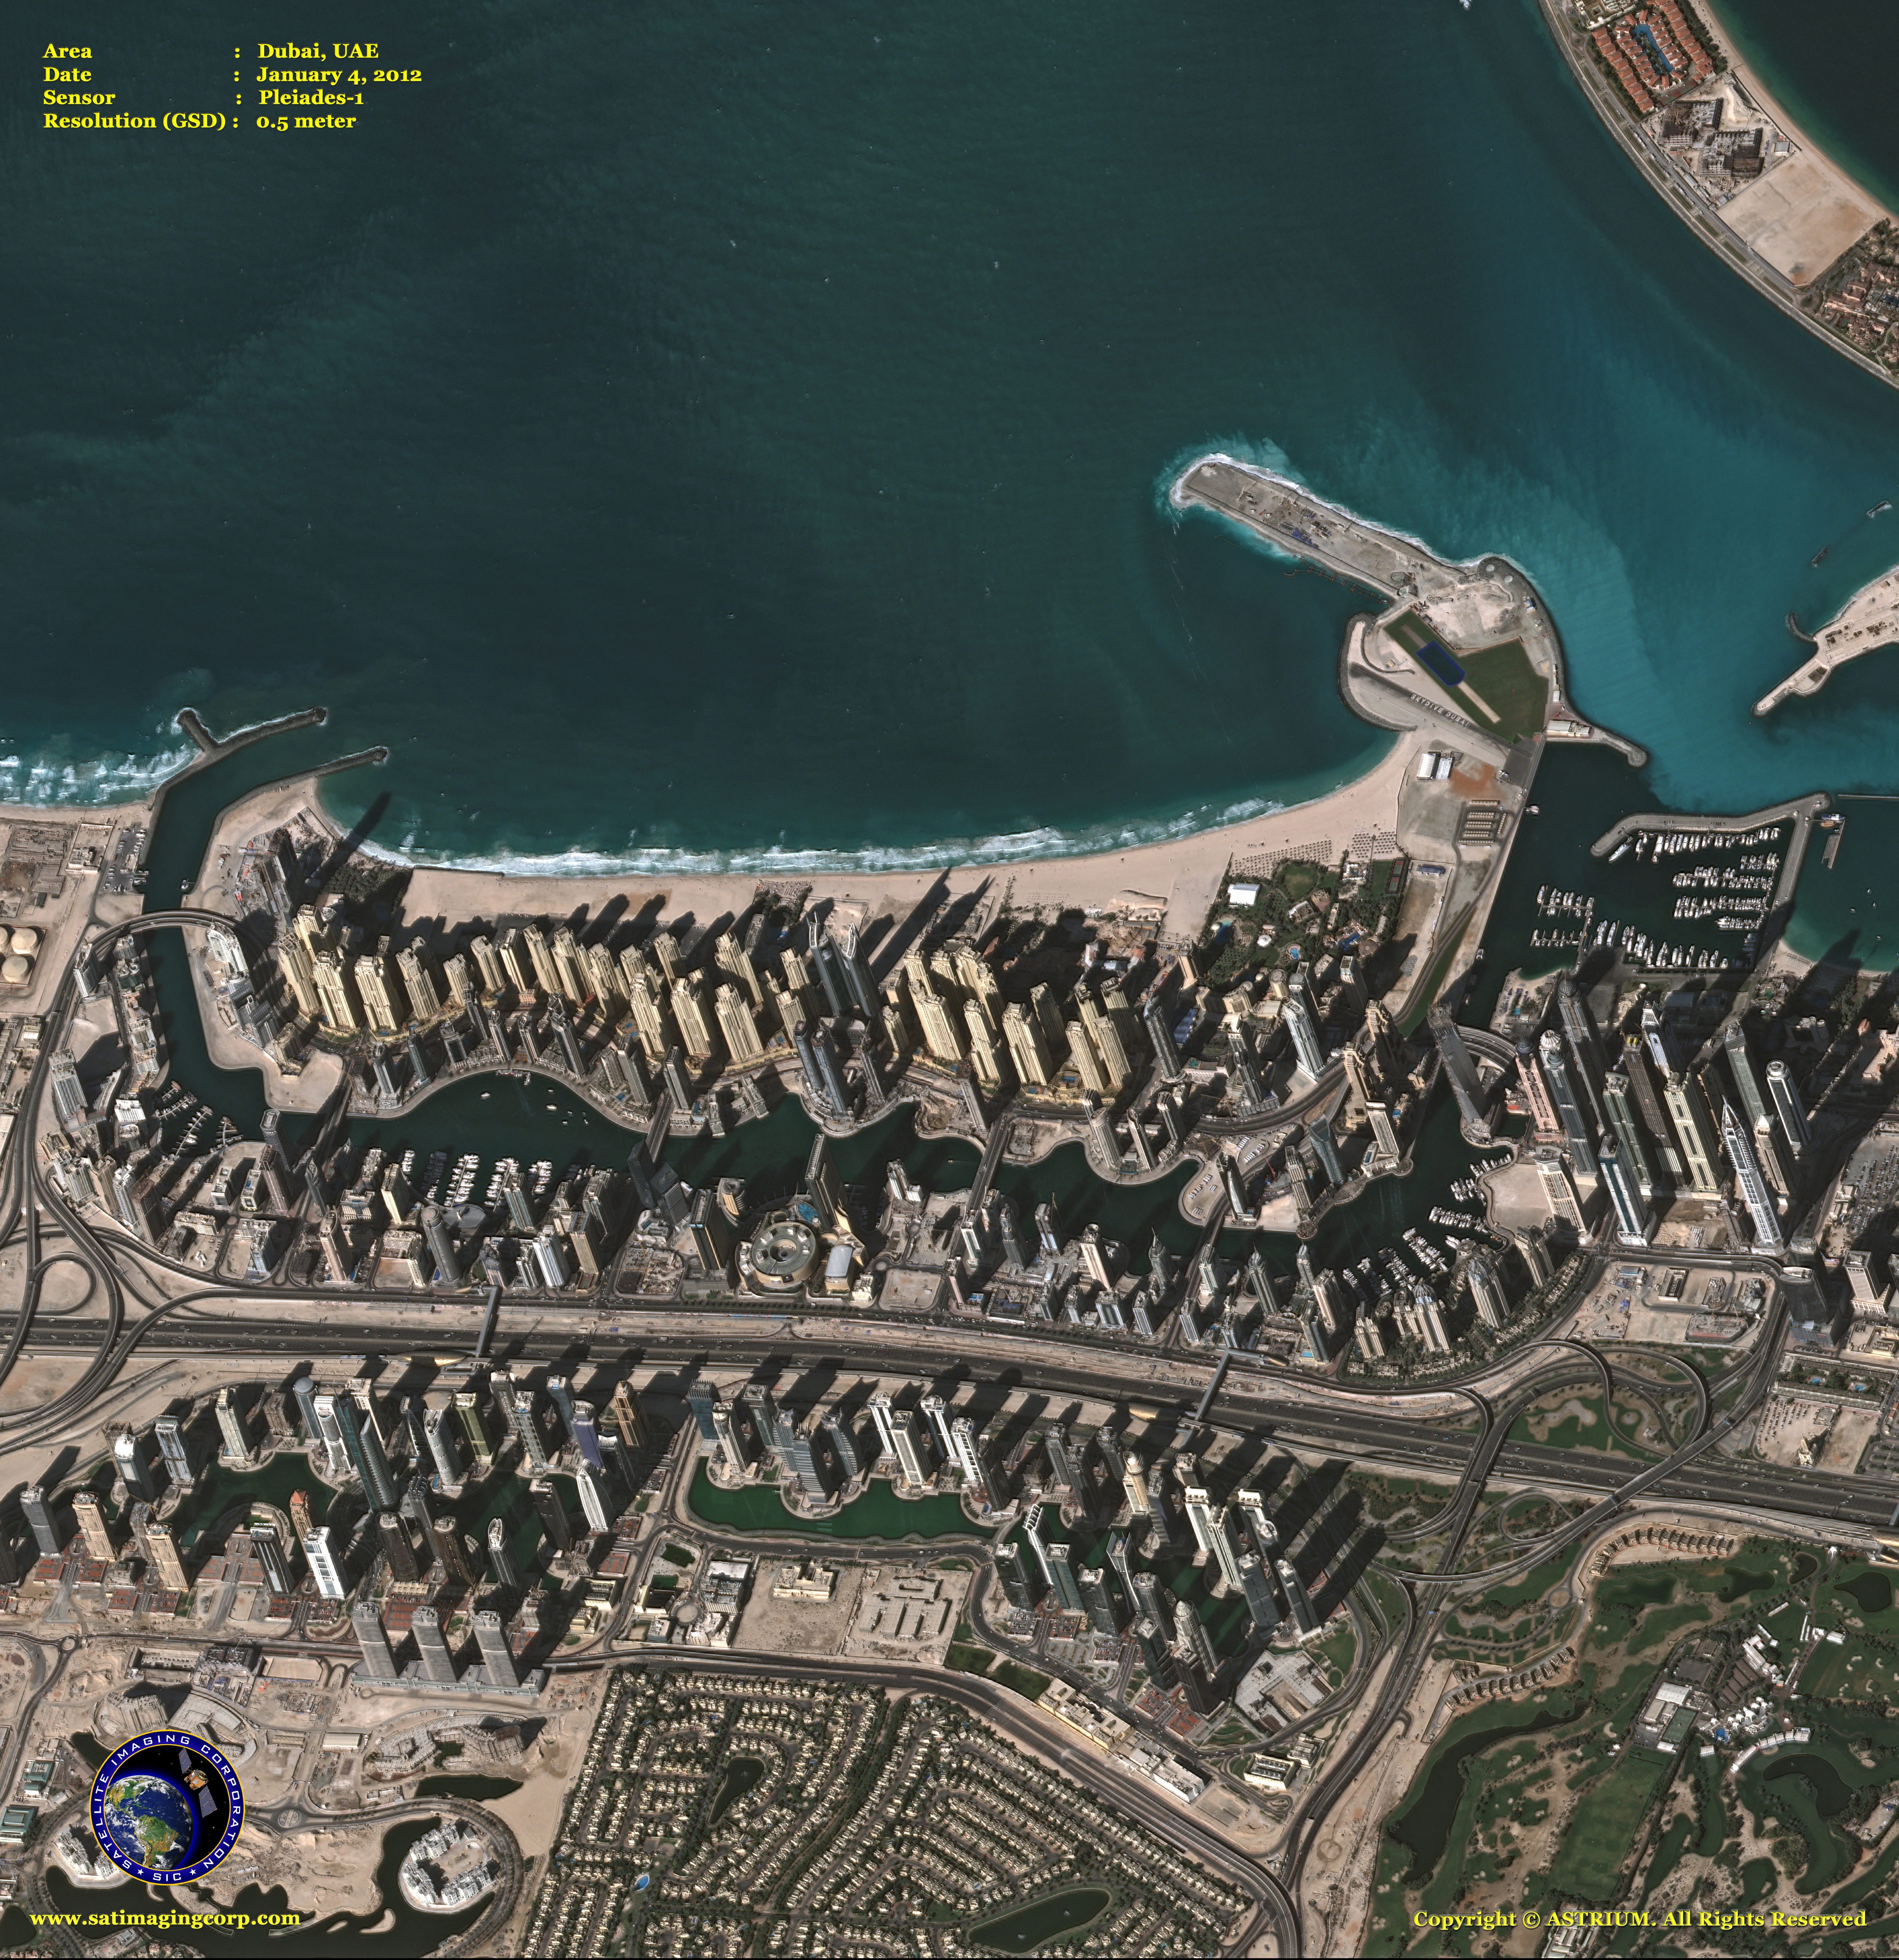 Pleiades 1a satellite image of dubai satellite imaging corp view full resolution image gumiabroncs Image collections